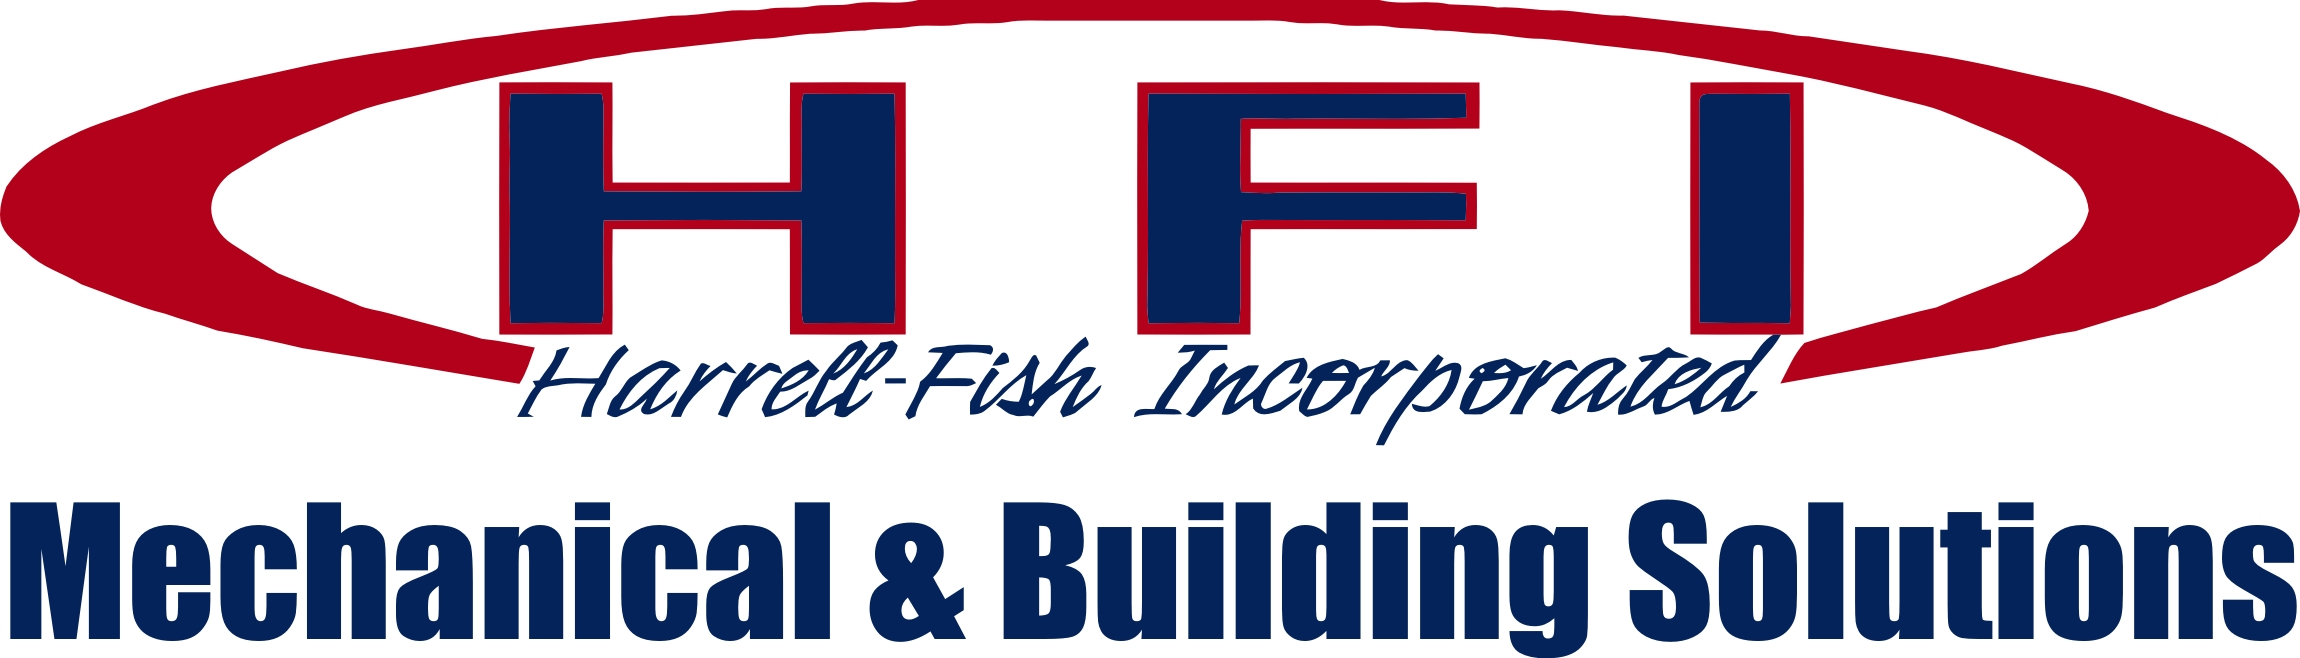 Harrell-Fish Inc. Mechanical & Building Solutions